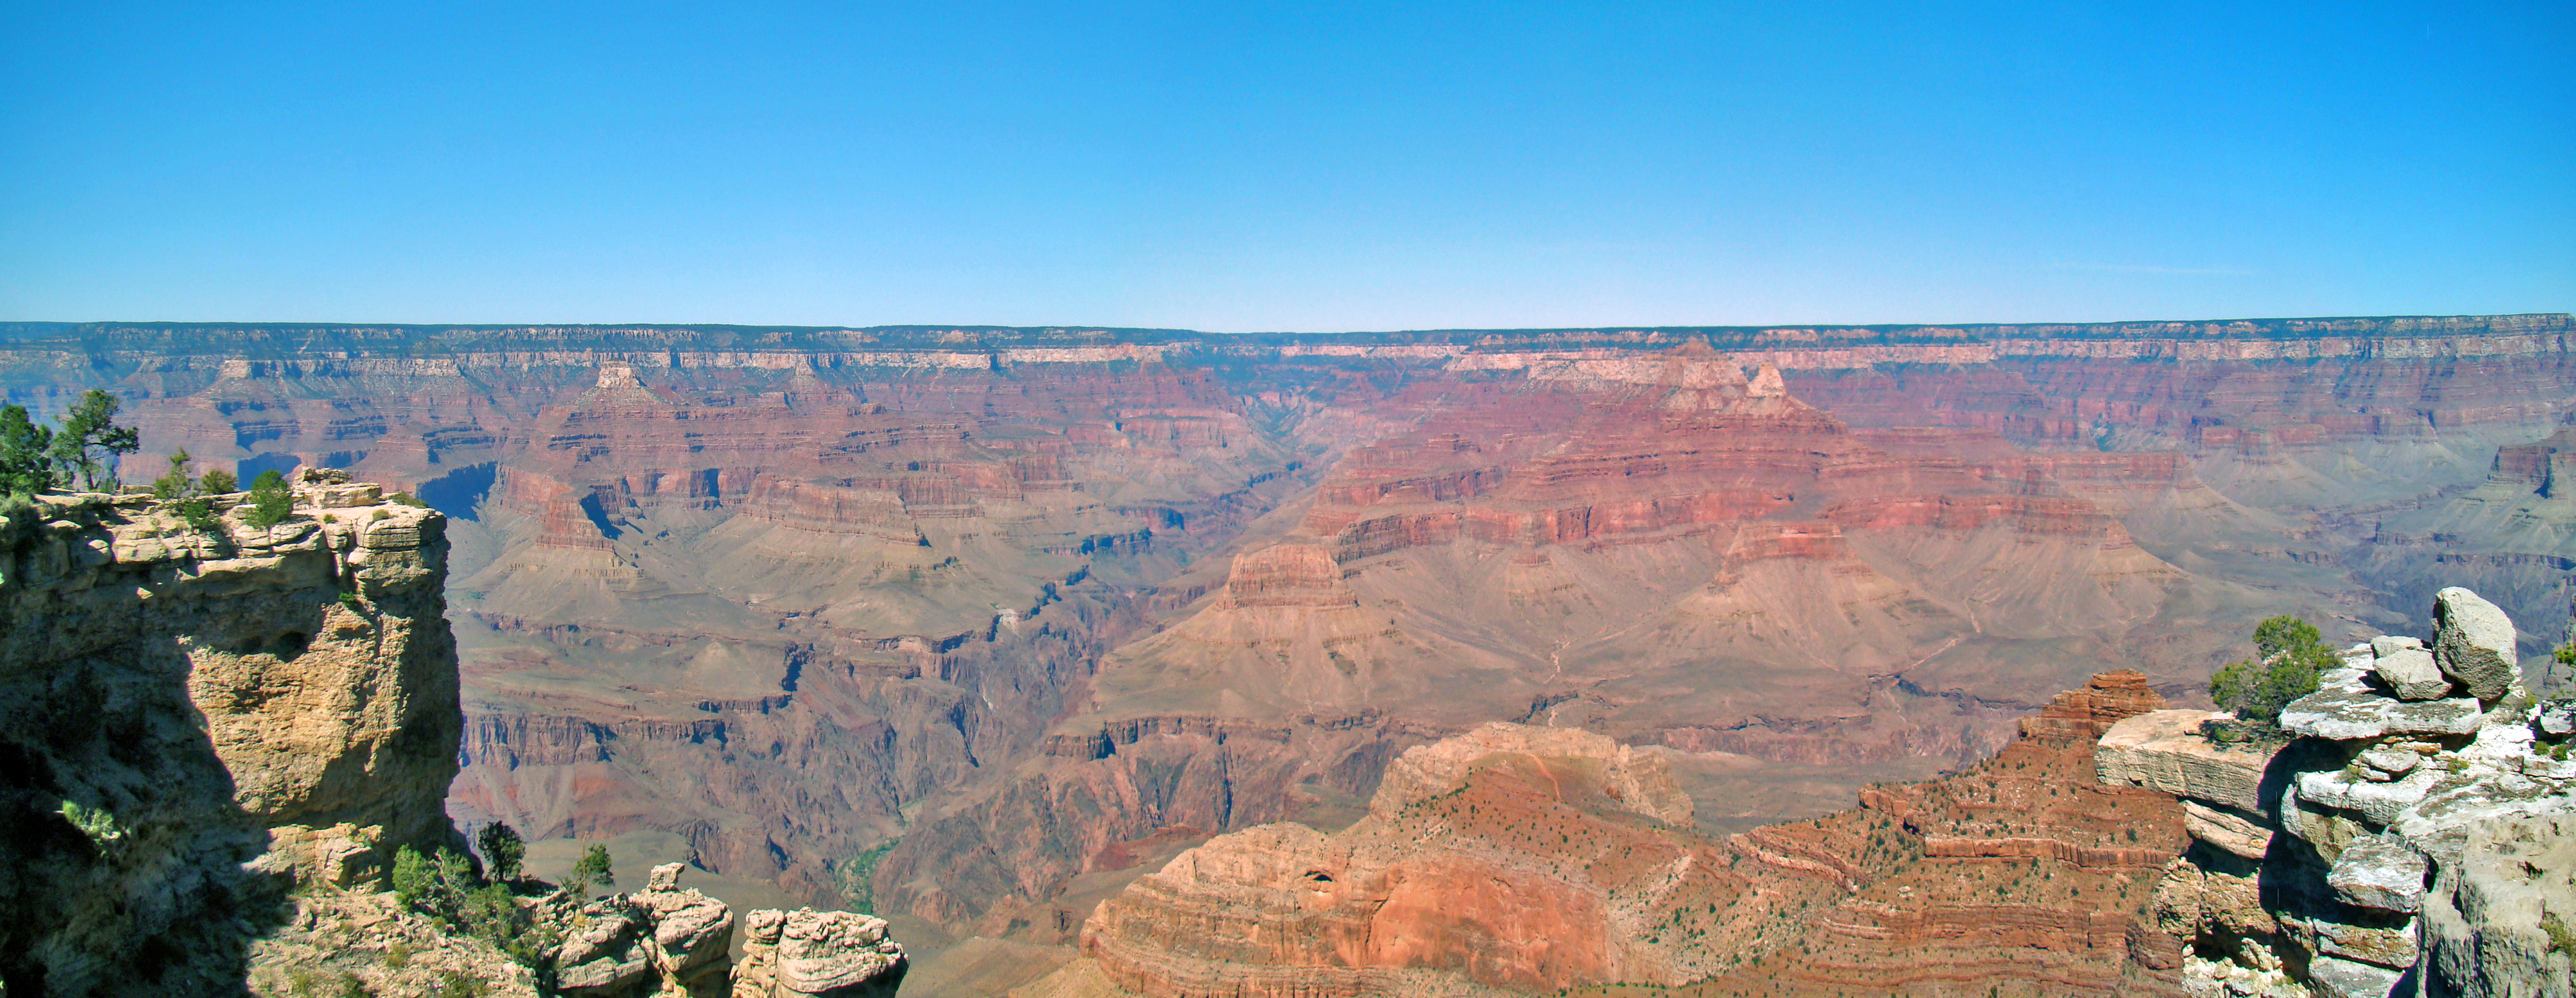 File:Panorama Grand Canyon 2.jpg - Wikimedia Commons